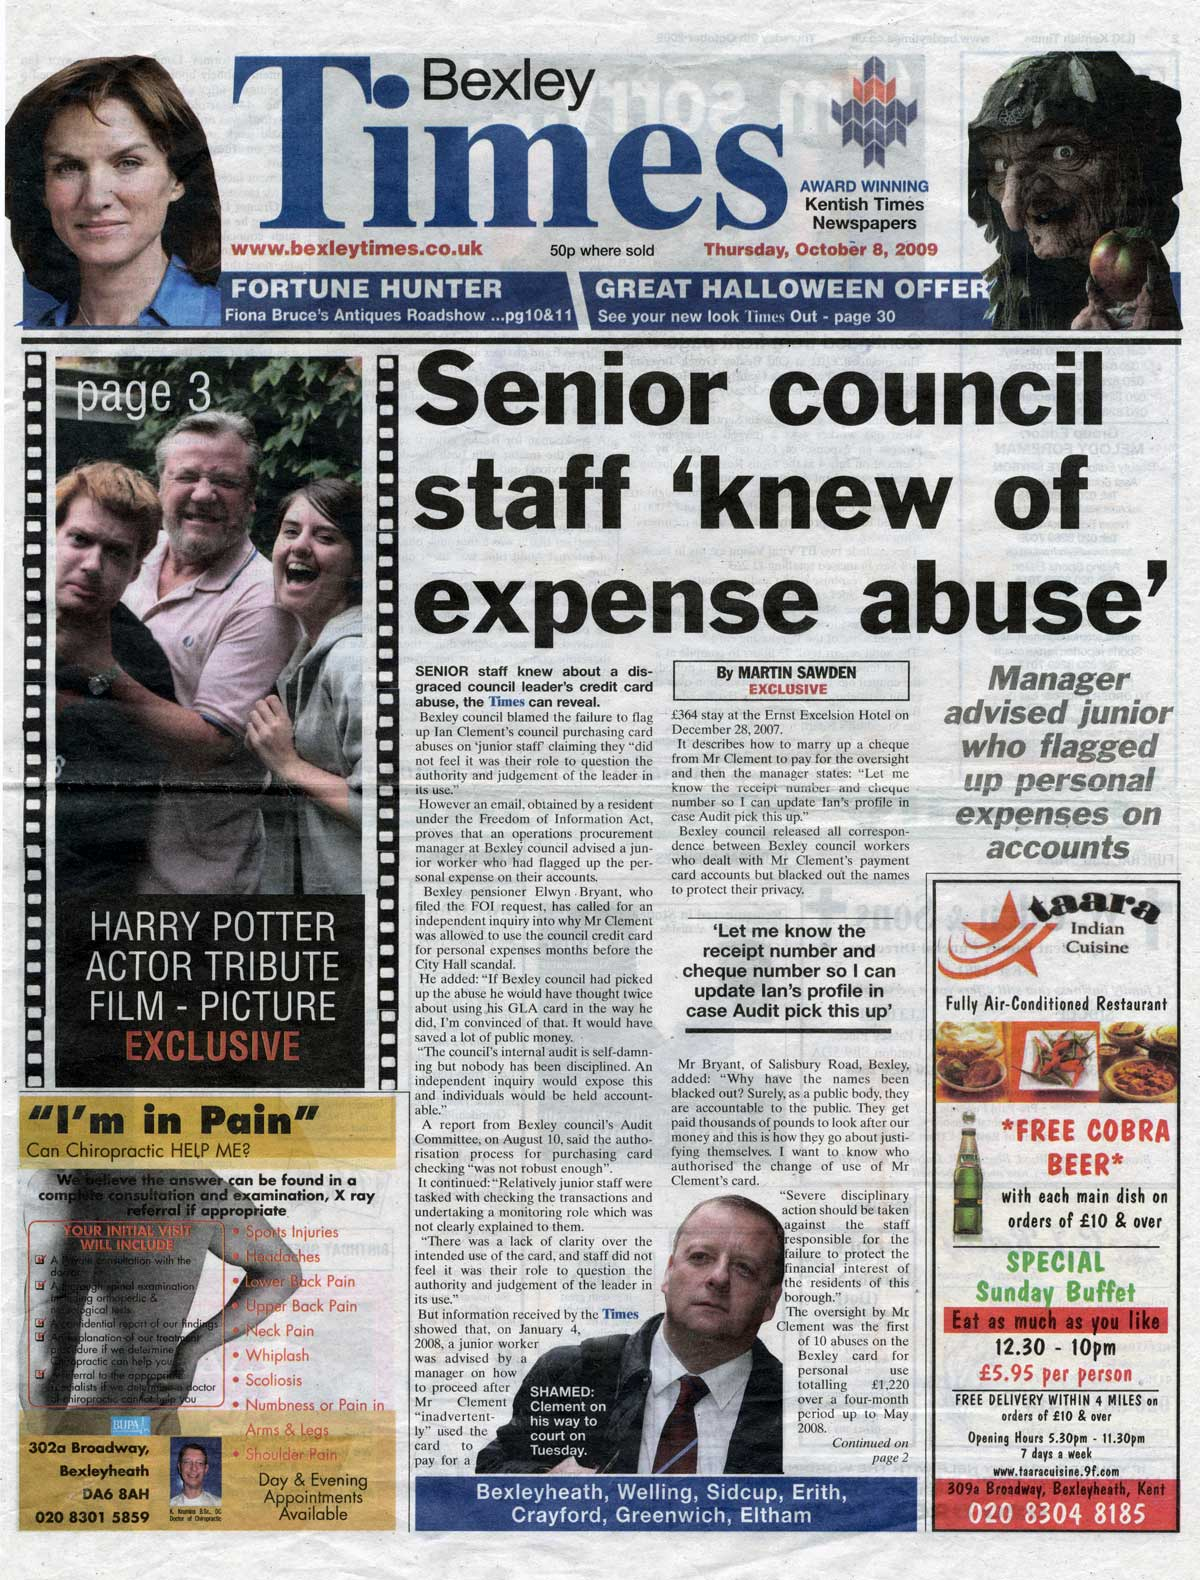 Bexley Times, 6 October 2009, page 1